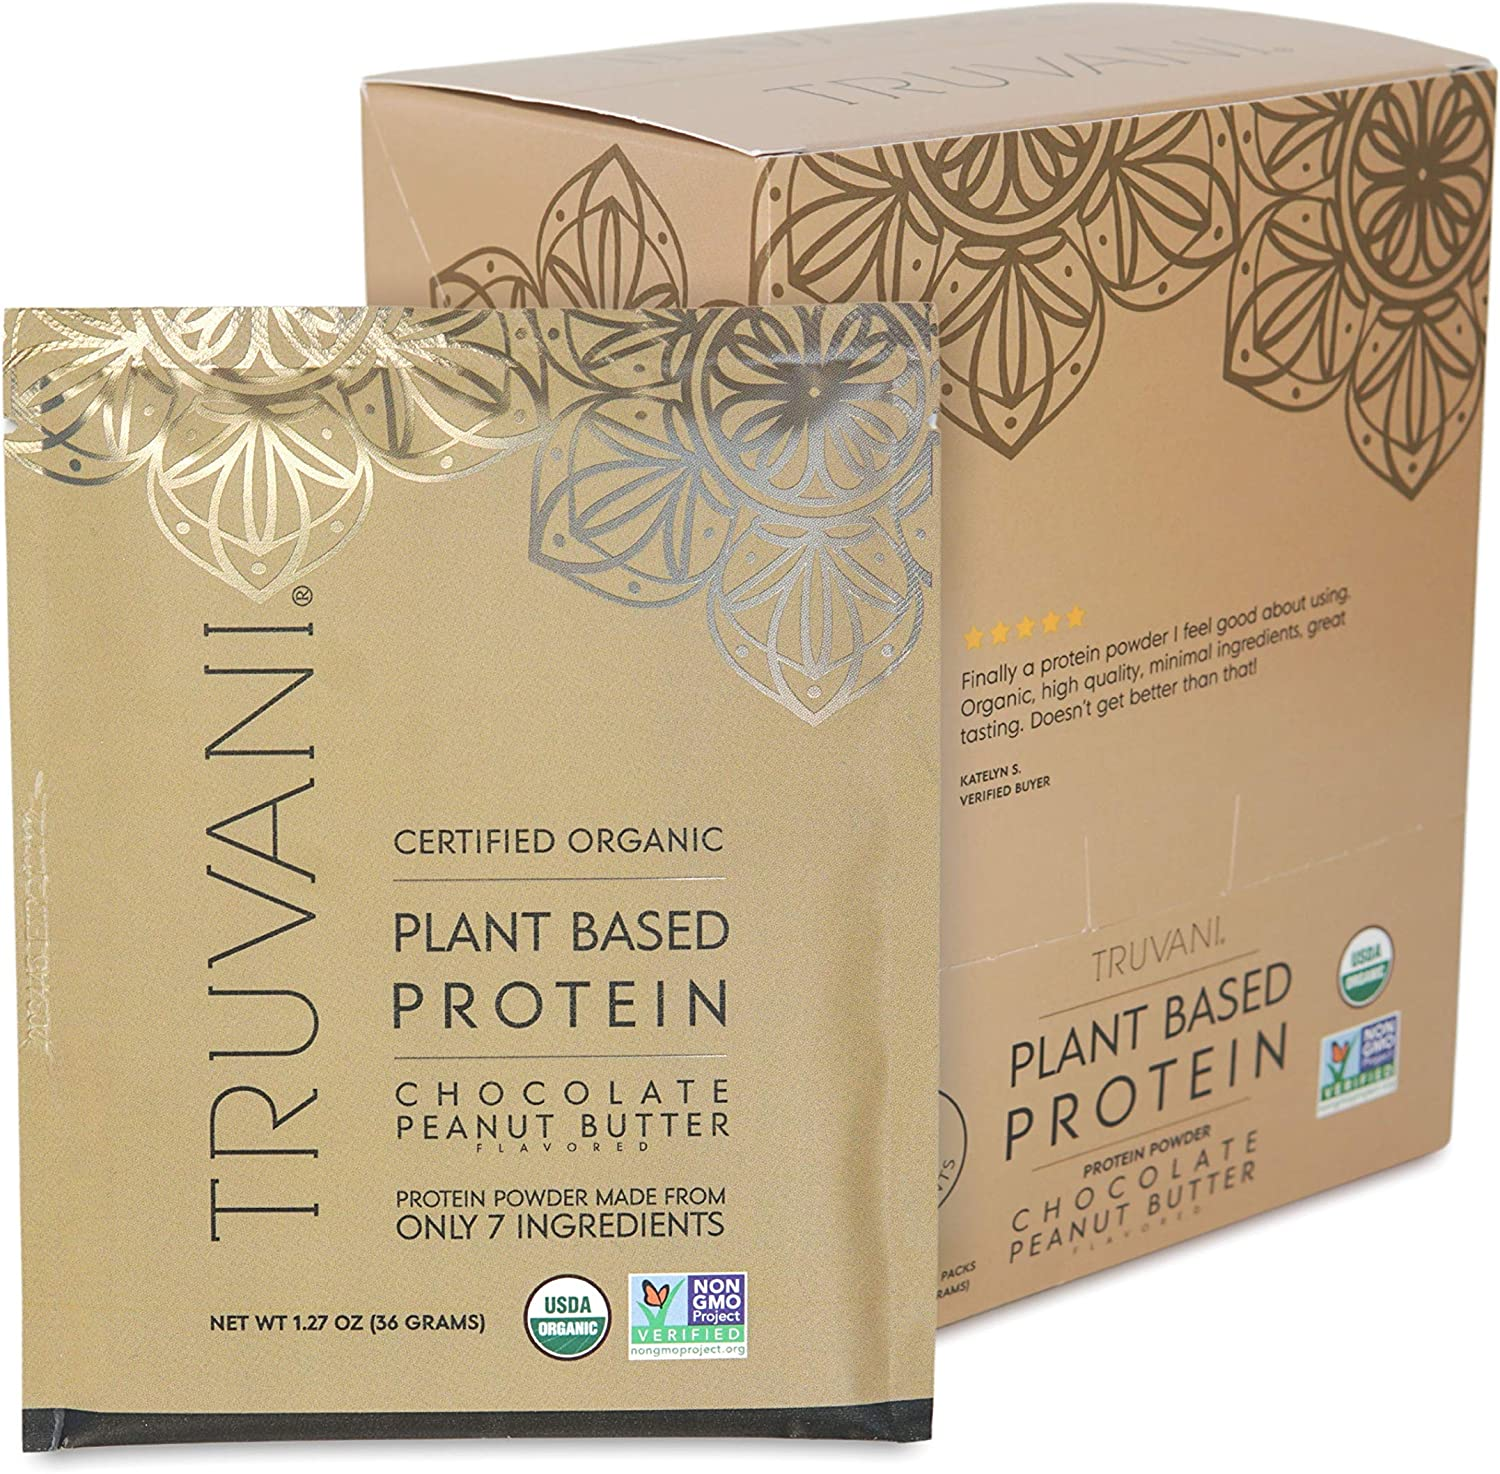 TRUVANI - Plant Based Protein Free Our shop most popular shipping anywhere in the nation Organic Powder USDA Certified Pr